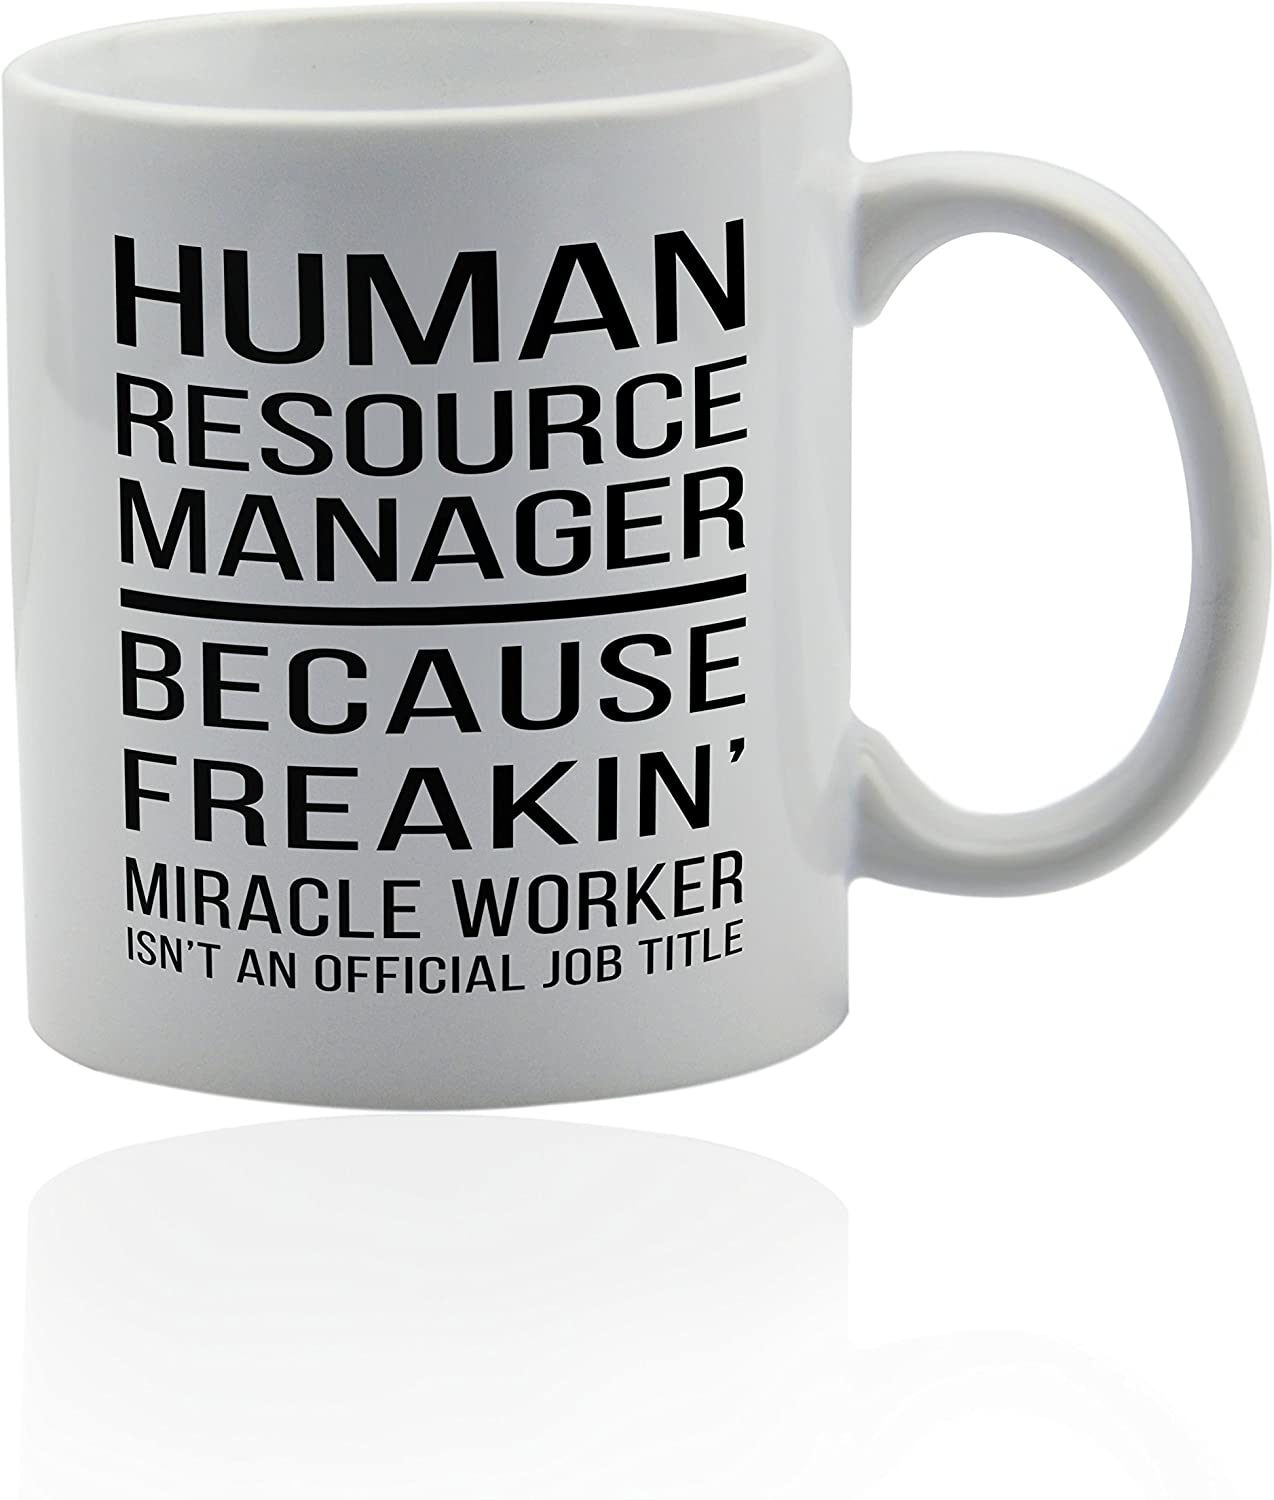 Human resources manager HR mug for coffee or tea 11 oz. Funny gag joke gift cup. Thank you appreciation gifts.